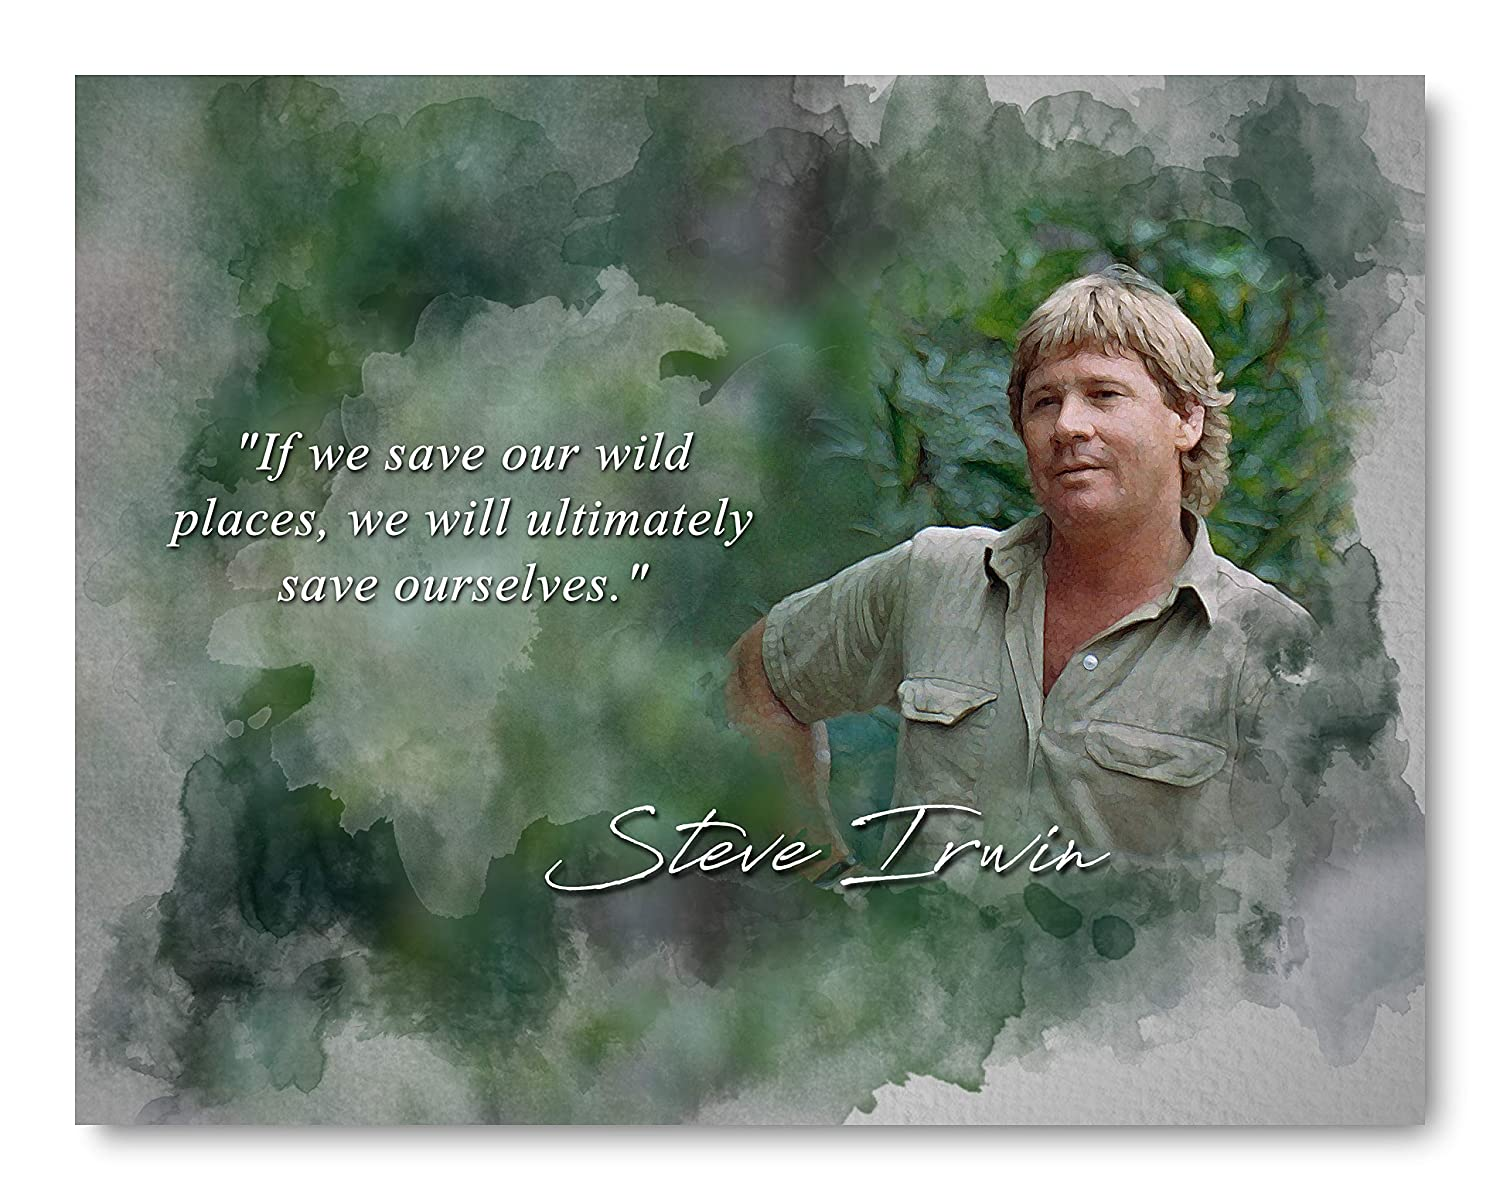 Amazon Com Ultimately Save Ourselves Steve Irwin Inspirational Quote 8 X 10 Unframed Print Decorative Wall Art For Classrooms Libraries Great Gift For Crocodile Hunter Fans Nature Lovers Science Teacher Handmade